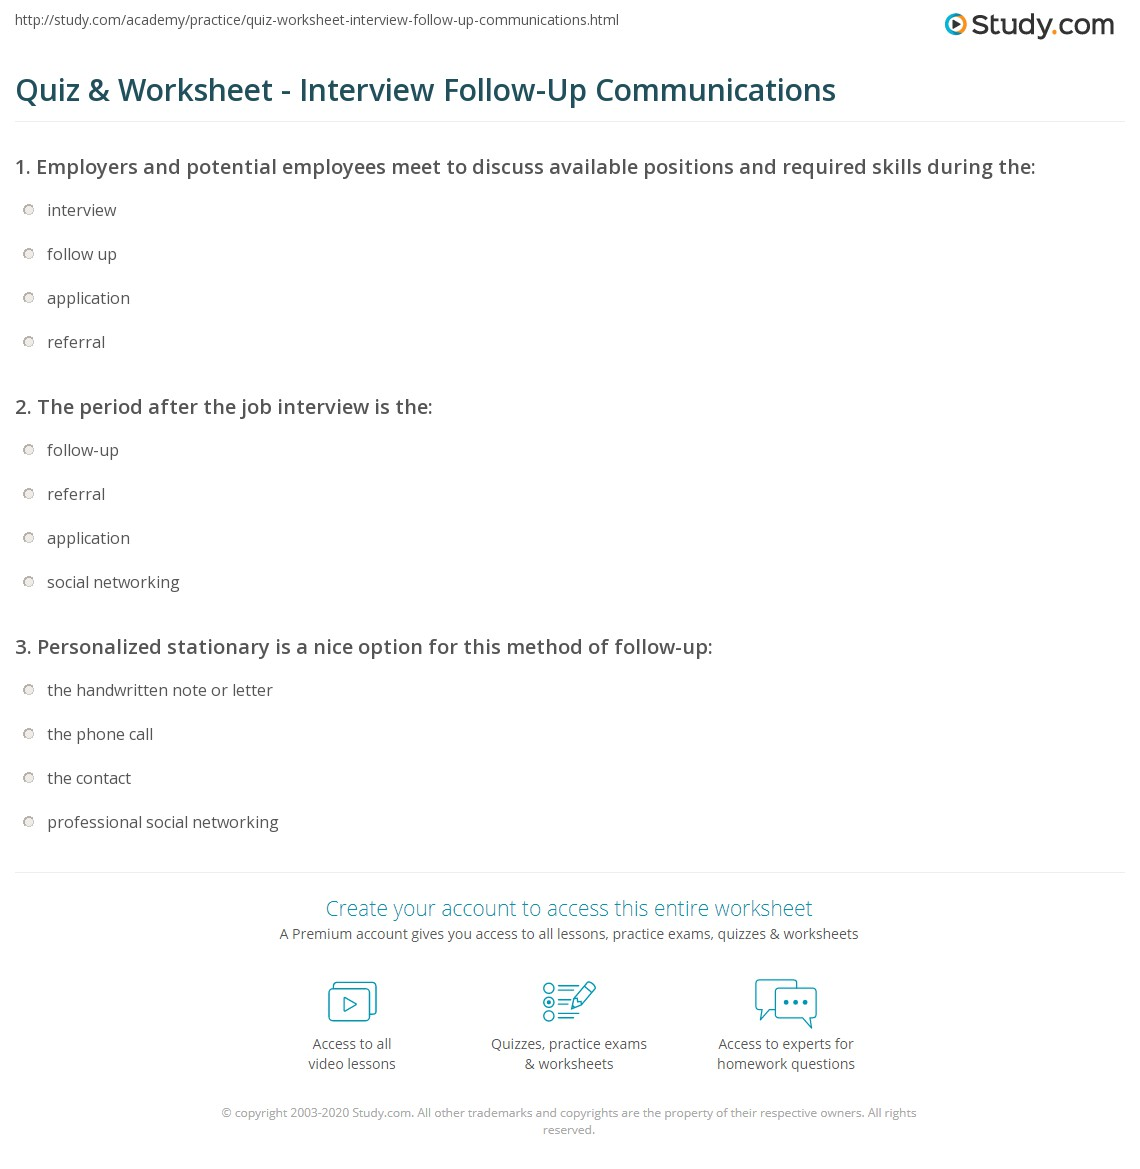 quiz worksheet interview follow up communications com the period after the job interview is the follow up